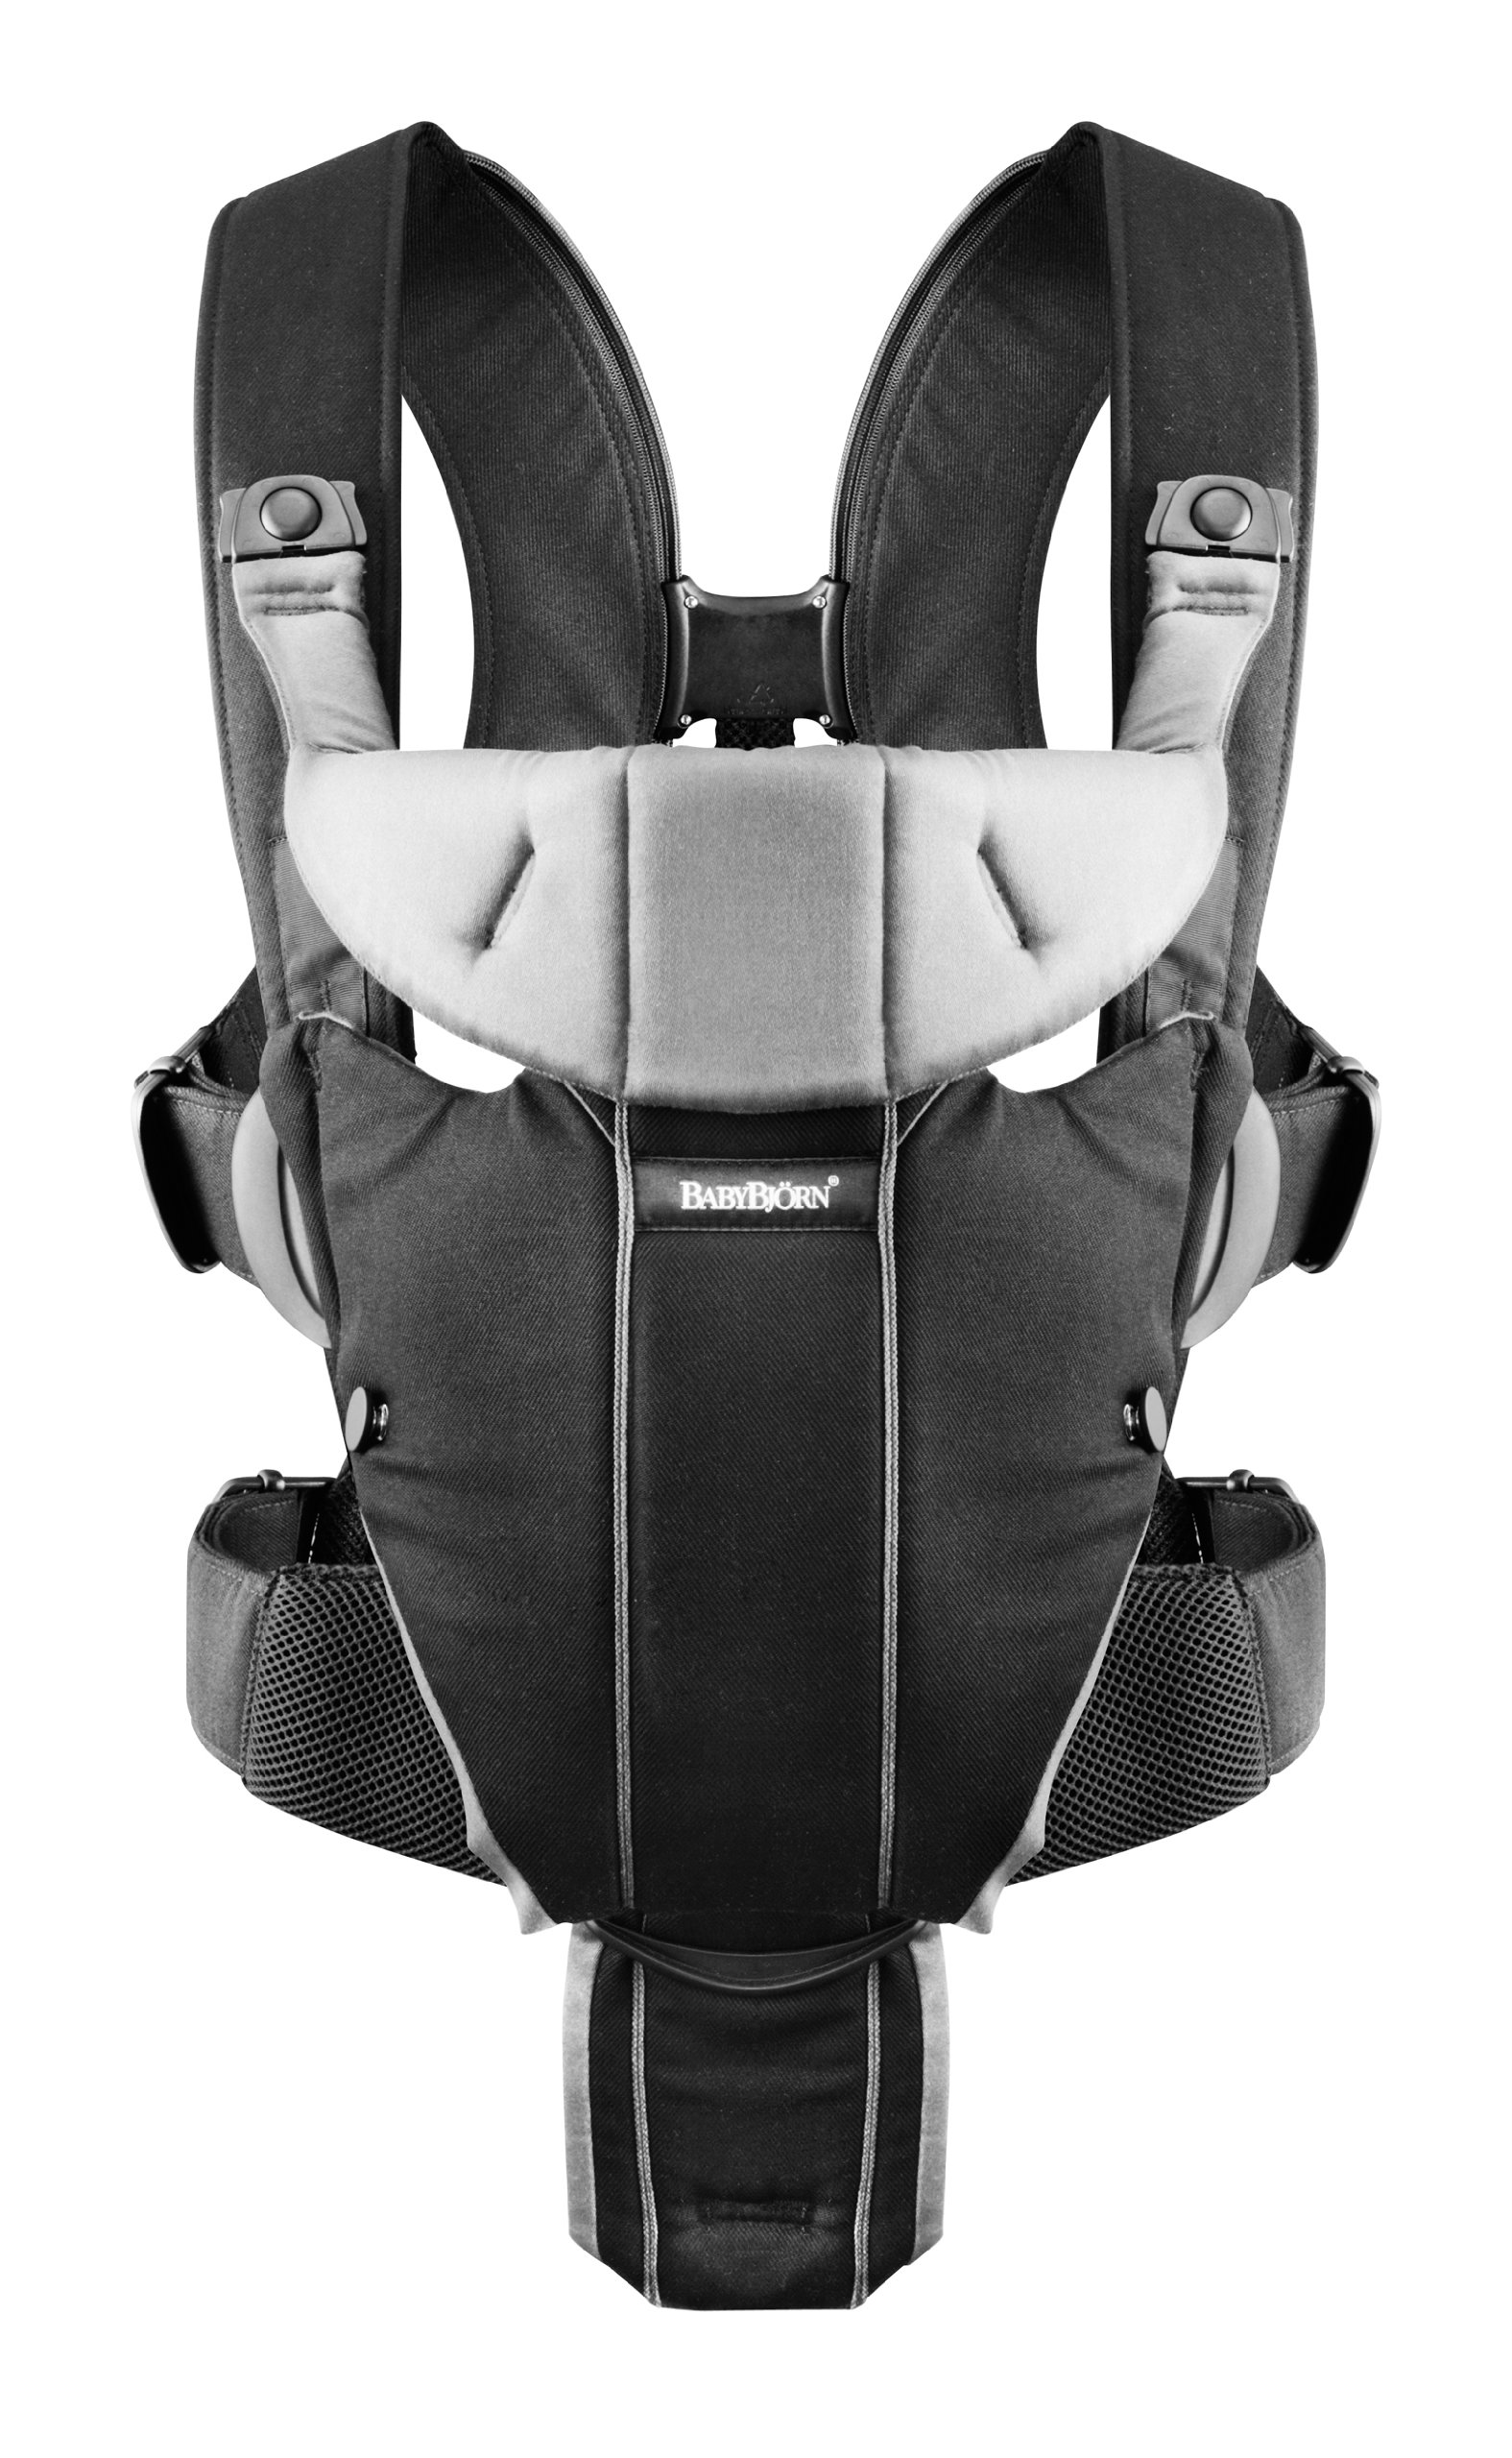 BABYBJÖRN Baby Carrier Miracle (Black/Silver, Cotton Mix) Baby Bjorn Excellent support for your lower back Comfortable waist belt distributes pressure away from your shoulders Carry on front, facing in or facing out 2